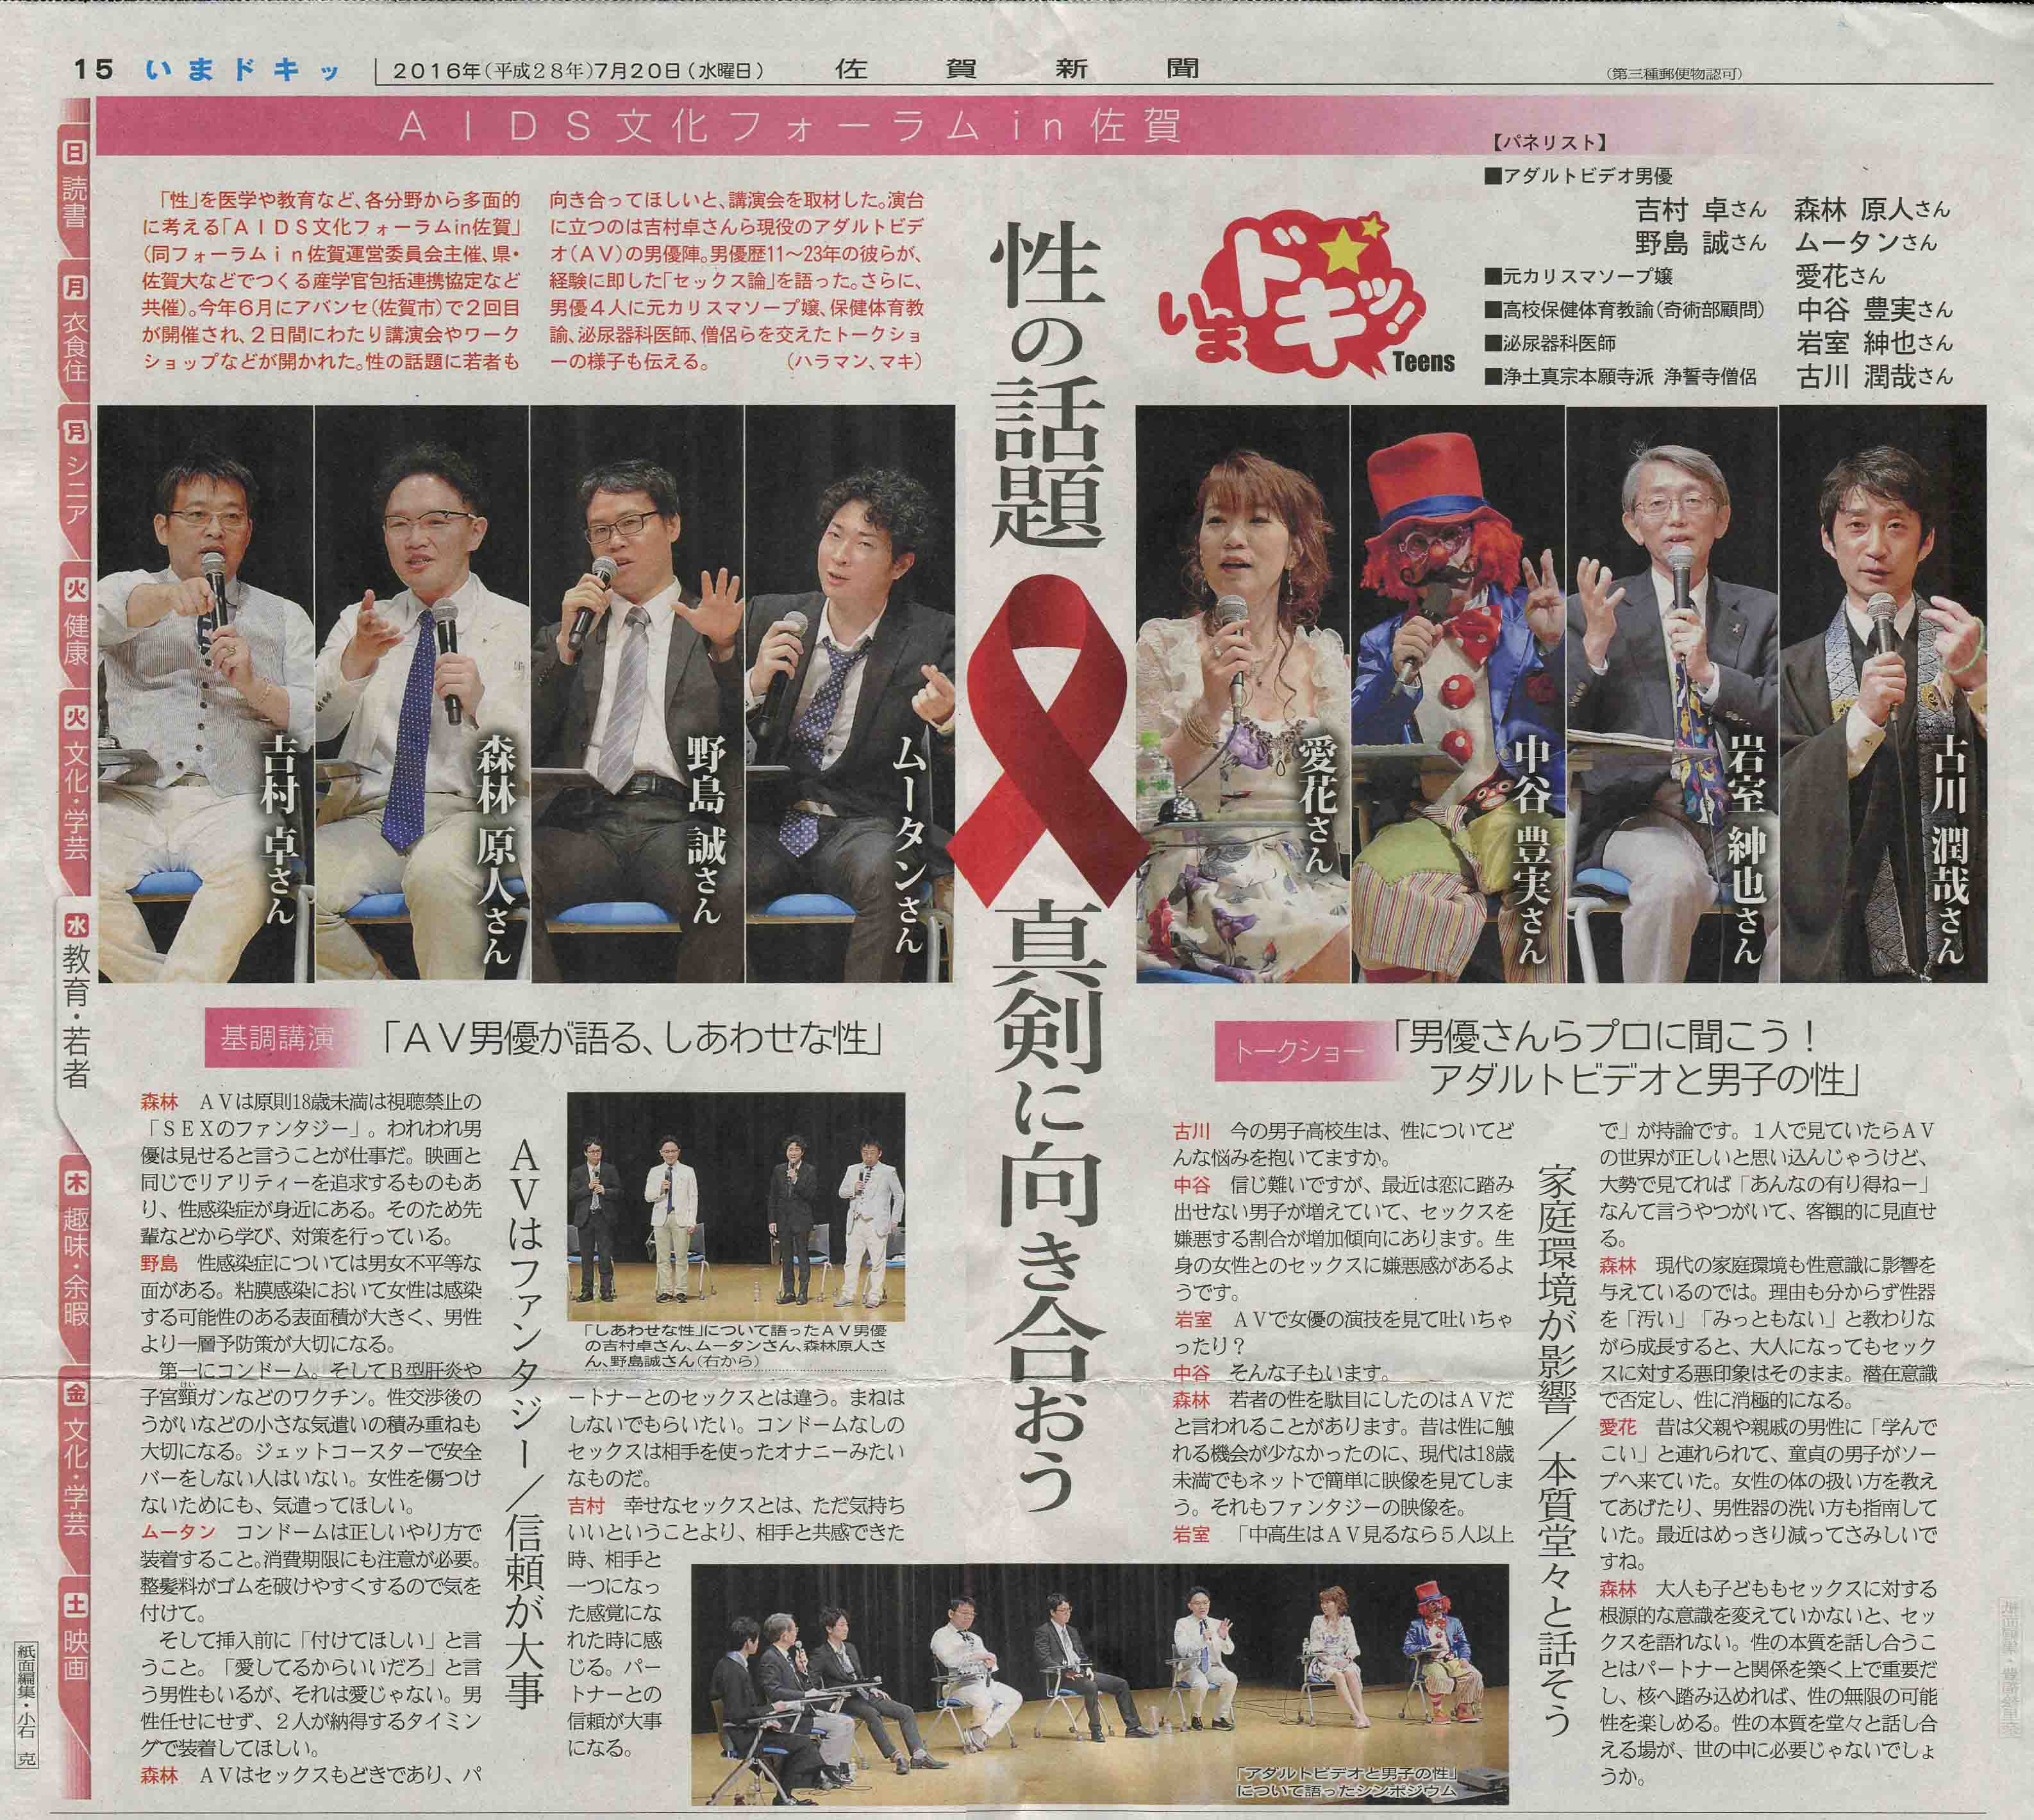 2016AIDS文化フォーラム in 佐賀